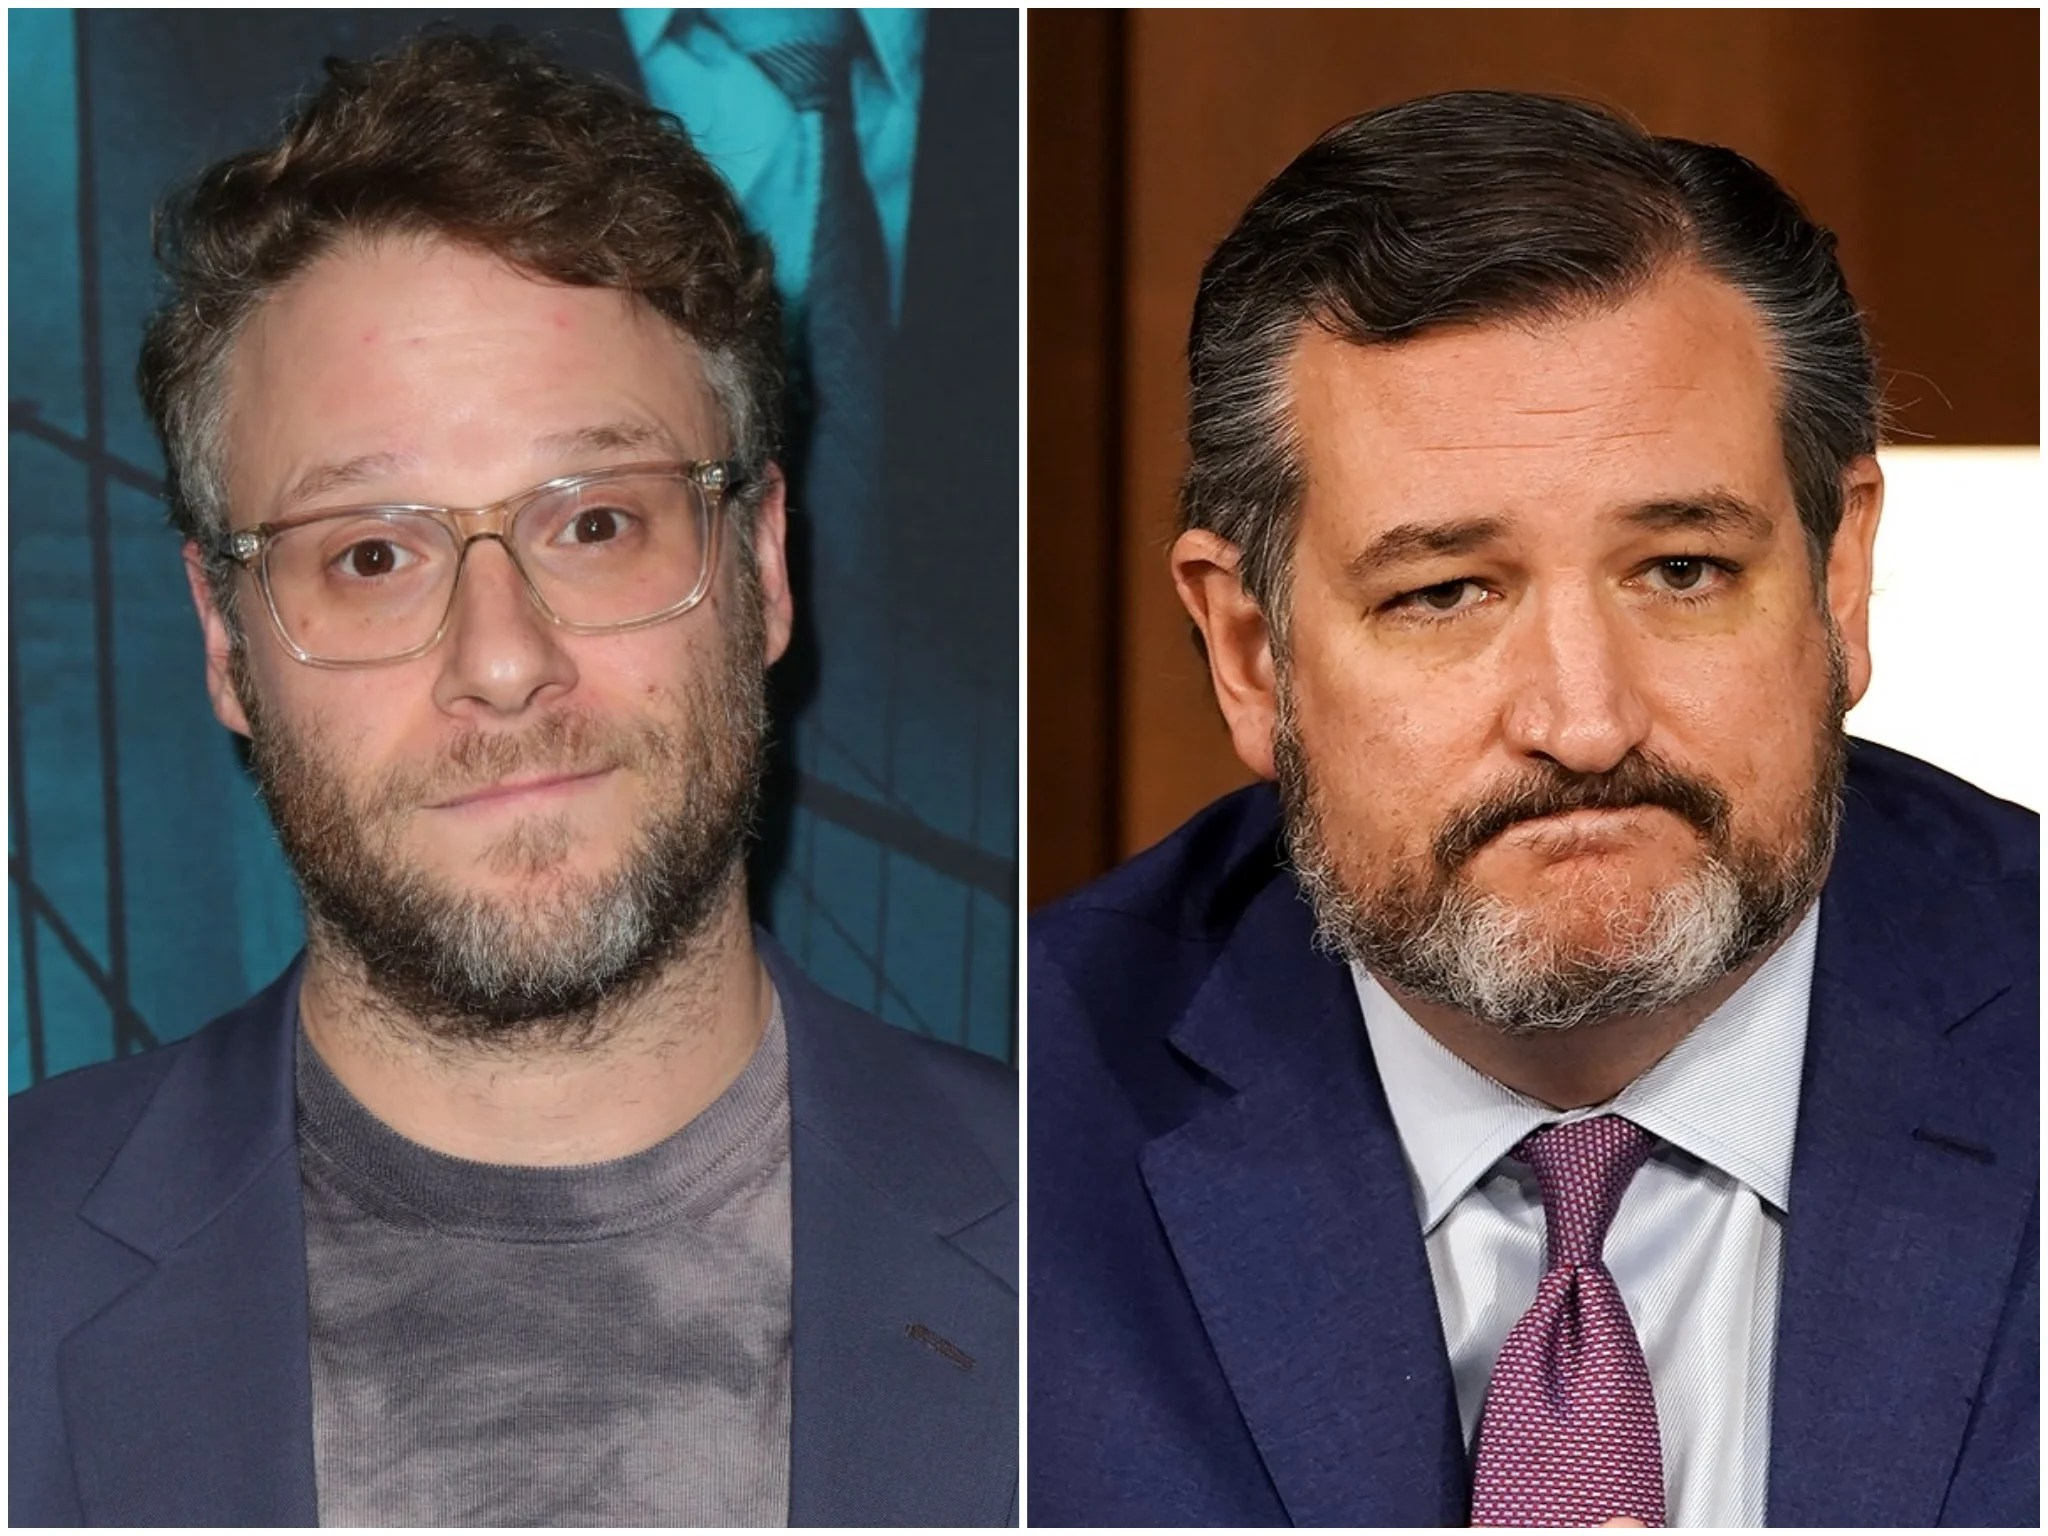 Seth Rogen dubs Ted Cruz a 'white supremacist fascist' in Twitter clash |  The Independent